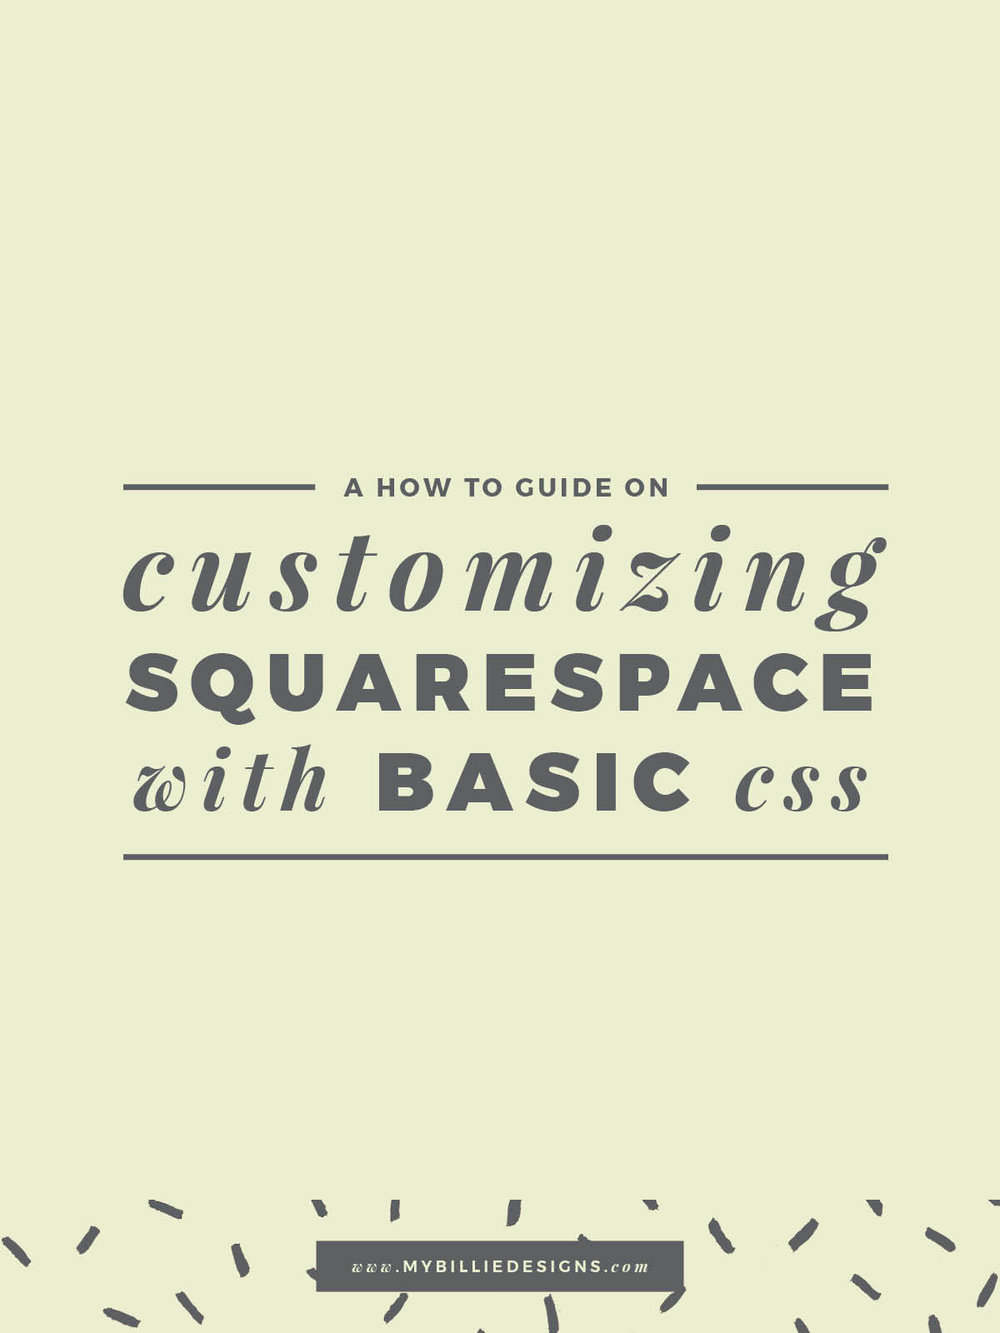 How To Guide On Customizing Squarespace With CSS Basics.jpg